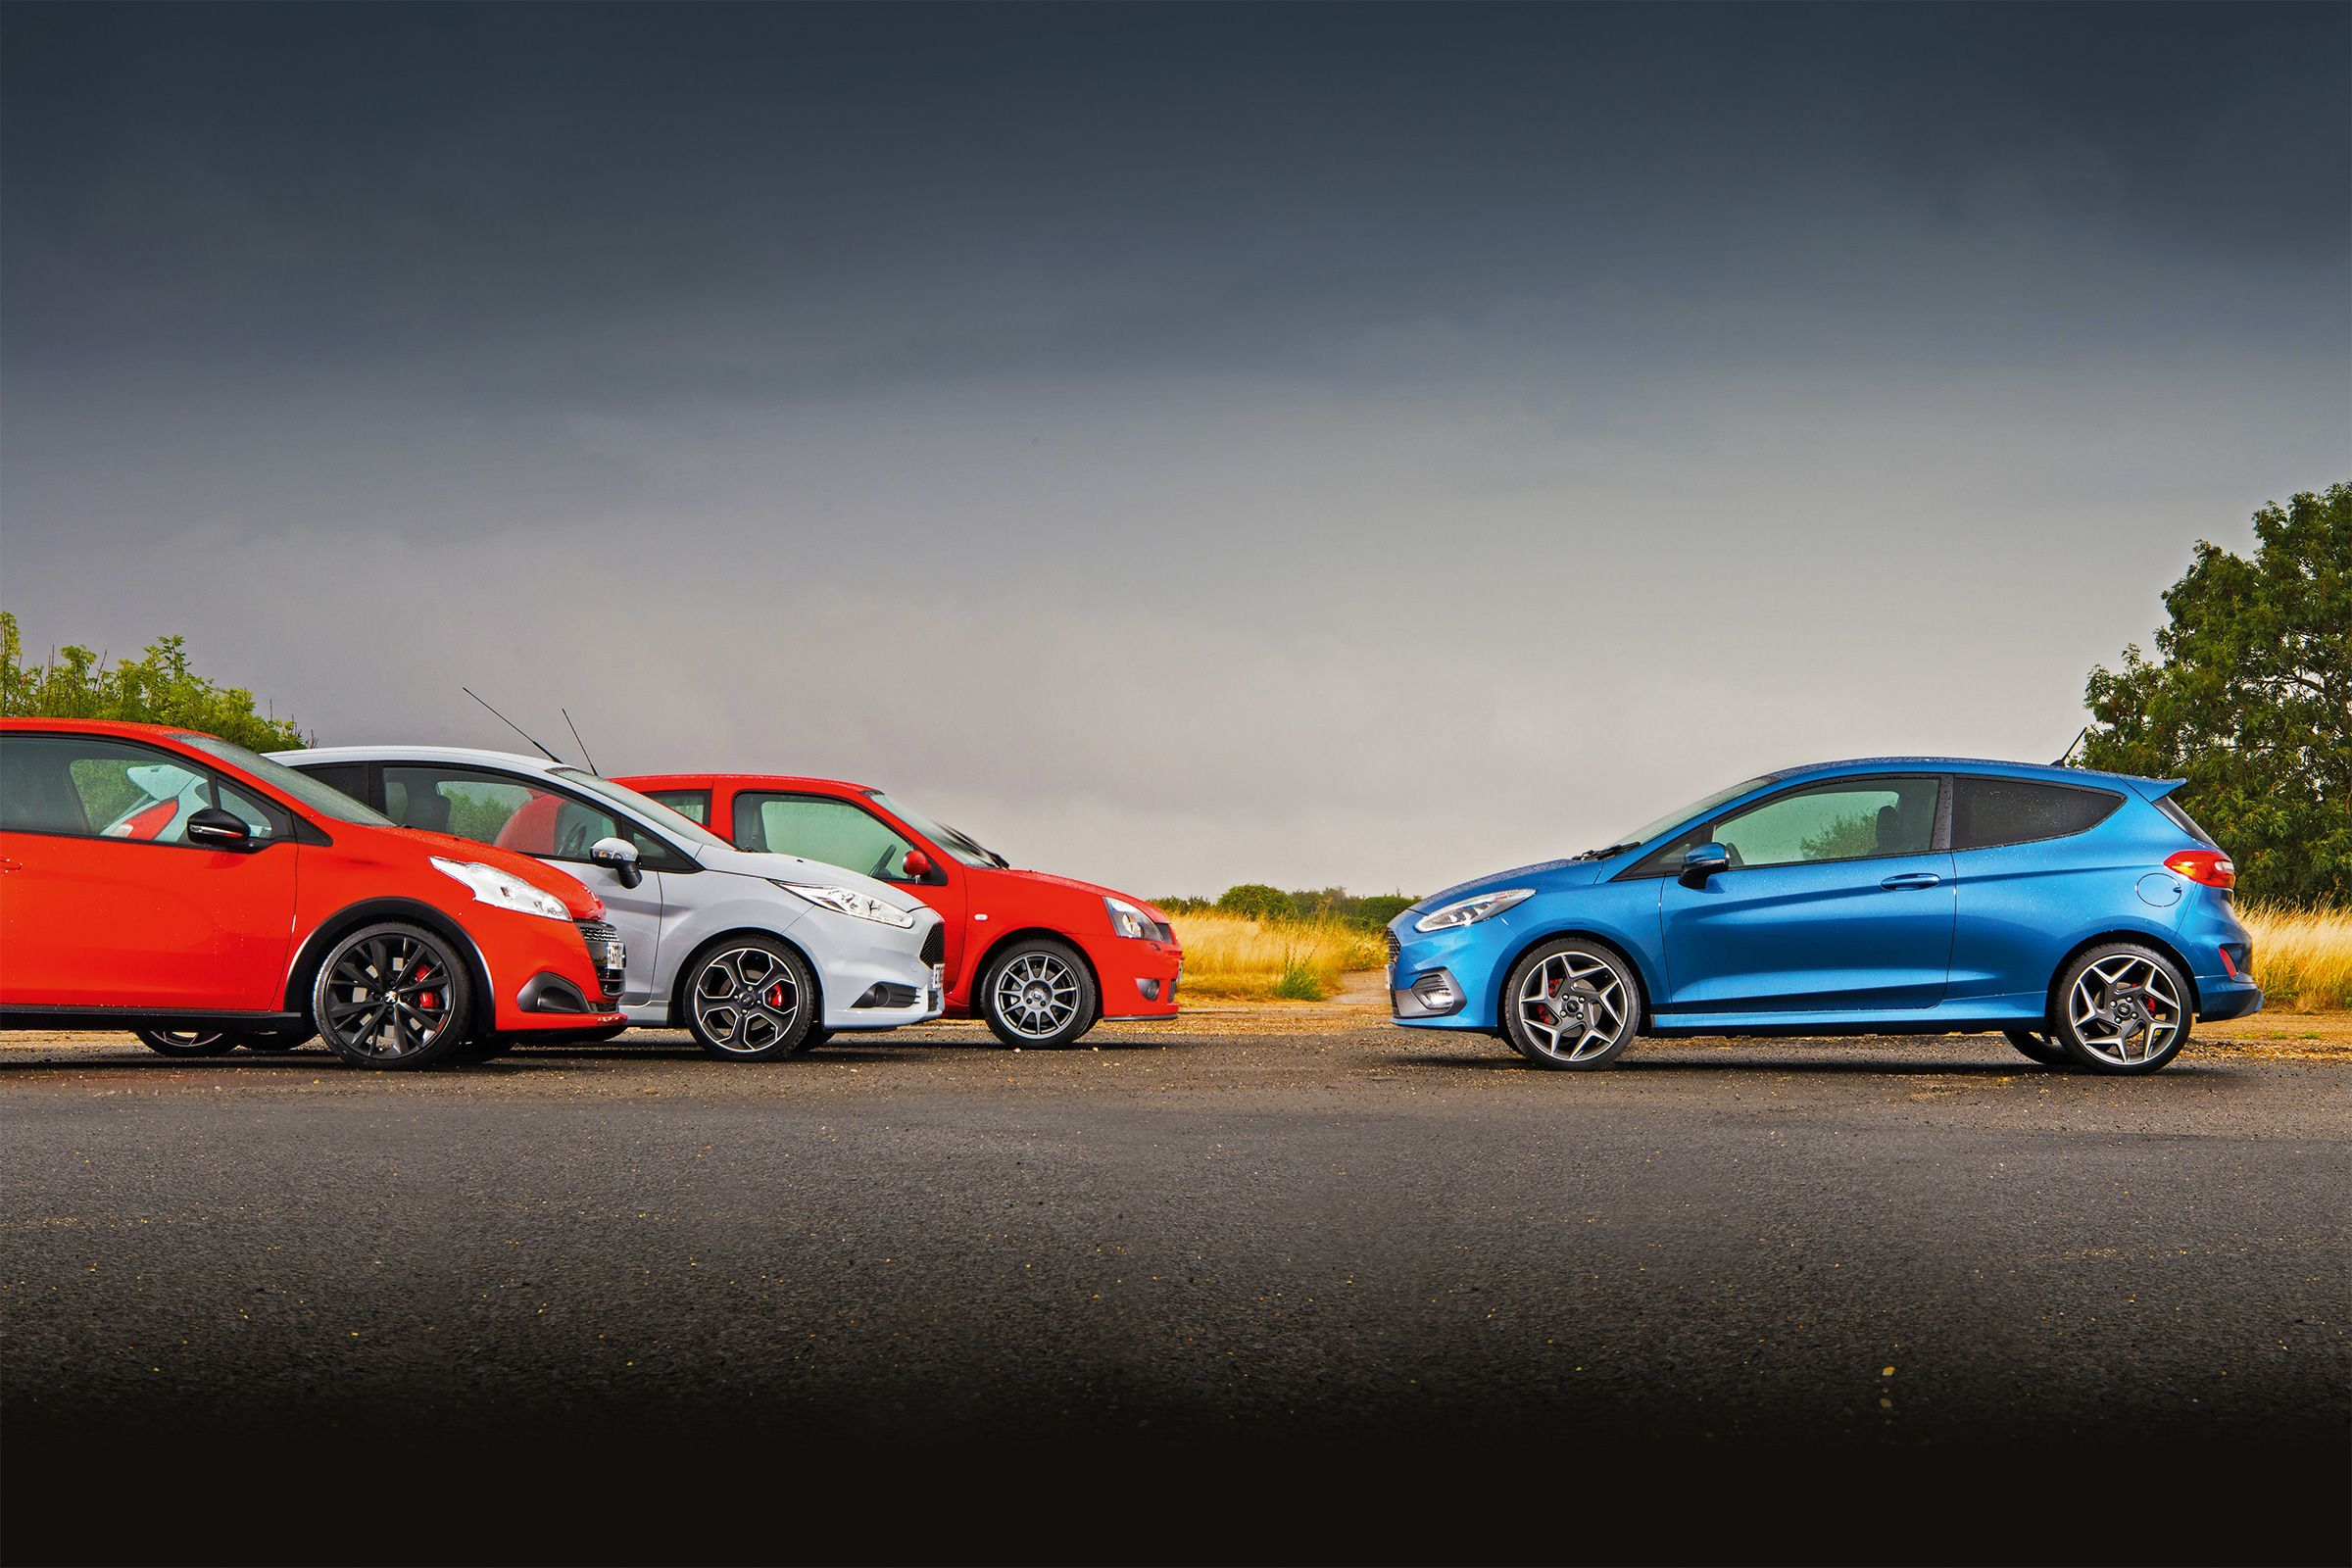 New Ford Fiesta St Vs Hot Hatch Greats Hot Hatch Ford Fiesta